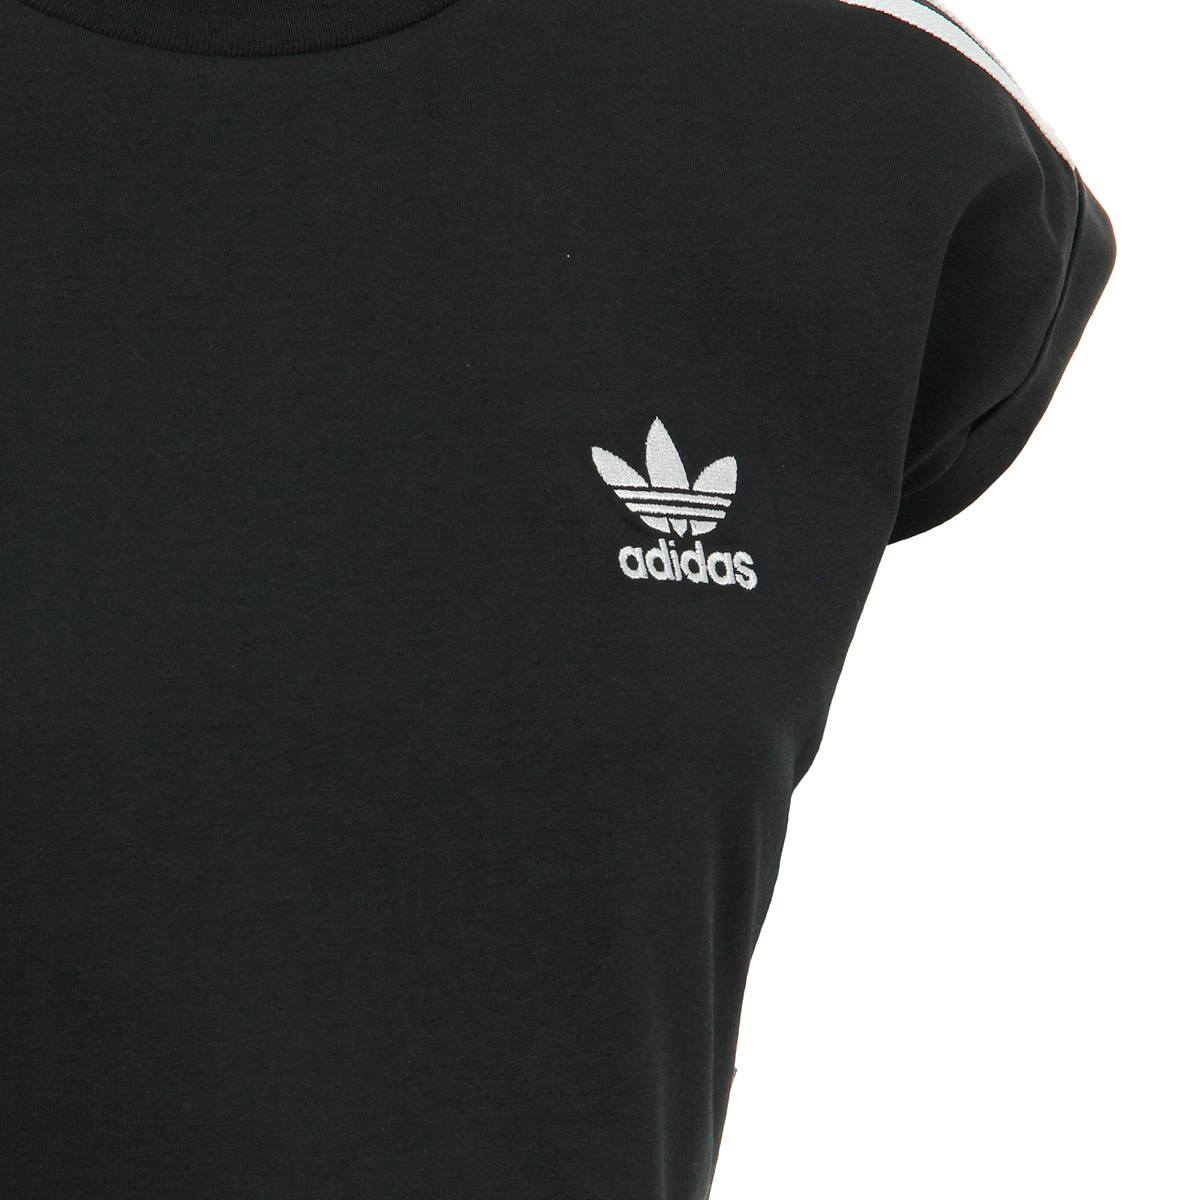 adidas Cropped Top BJ8178, T-Shirts femme